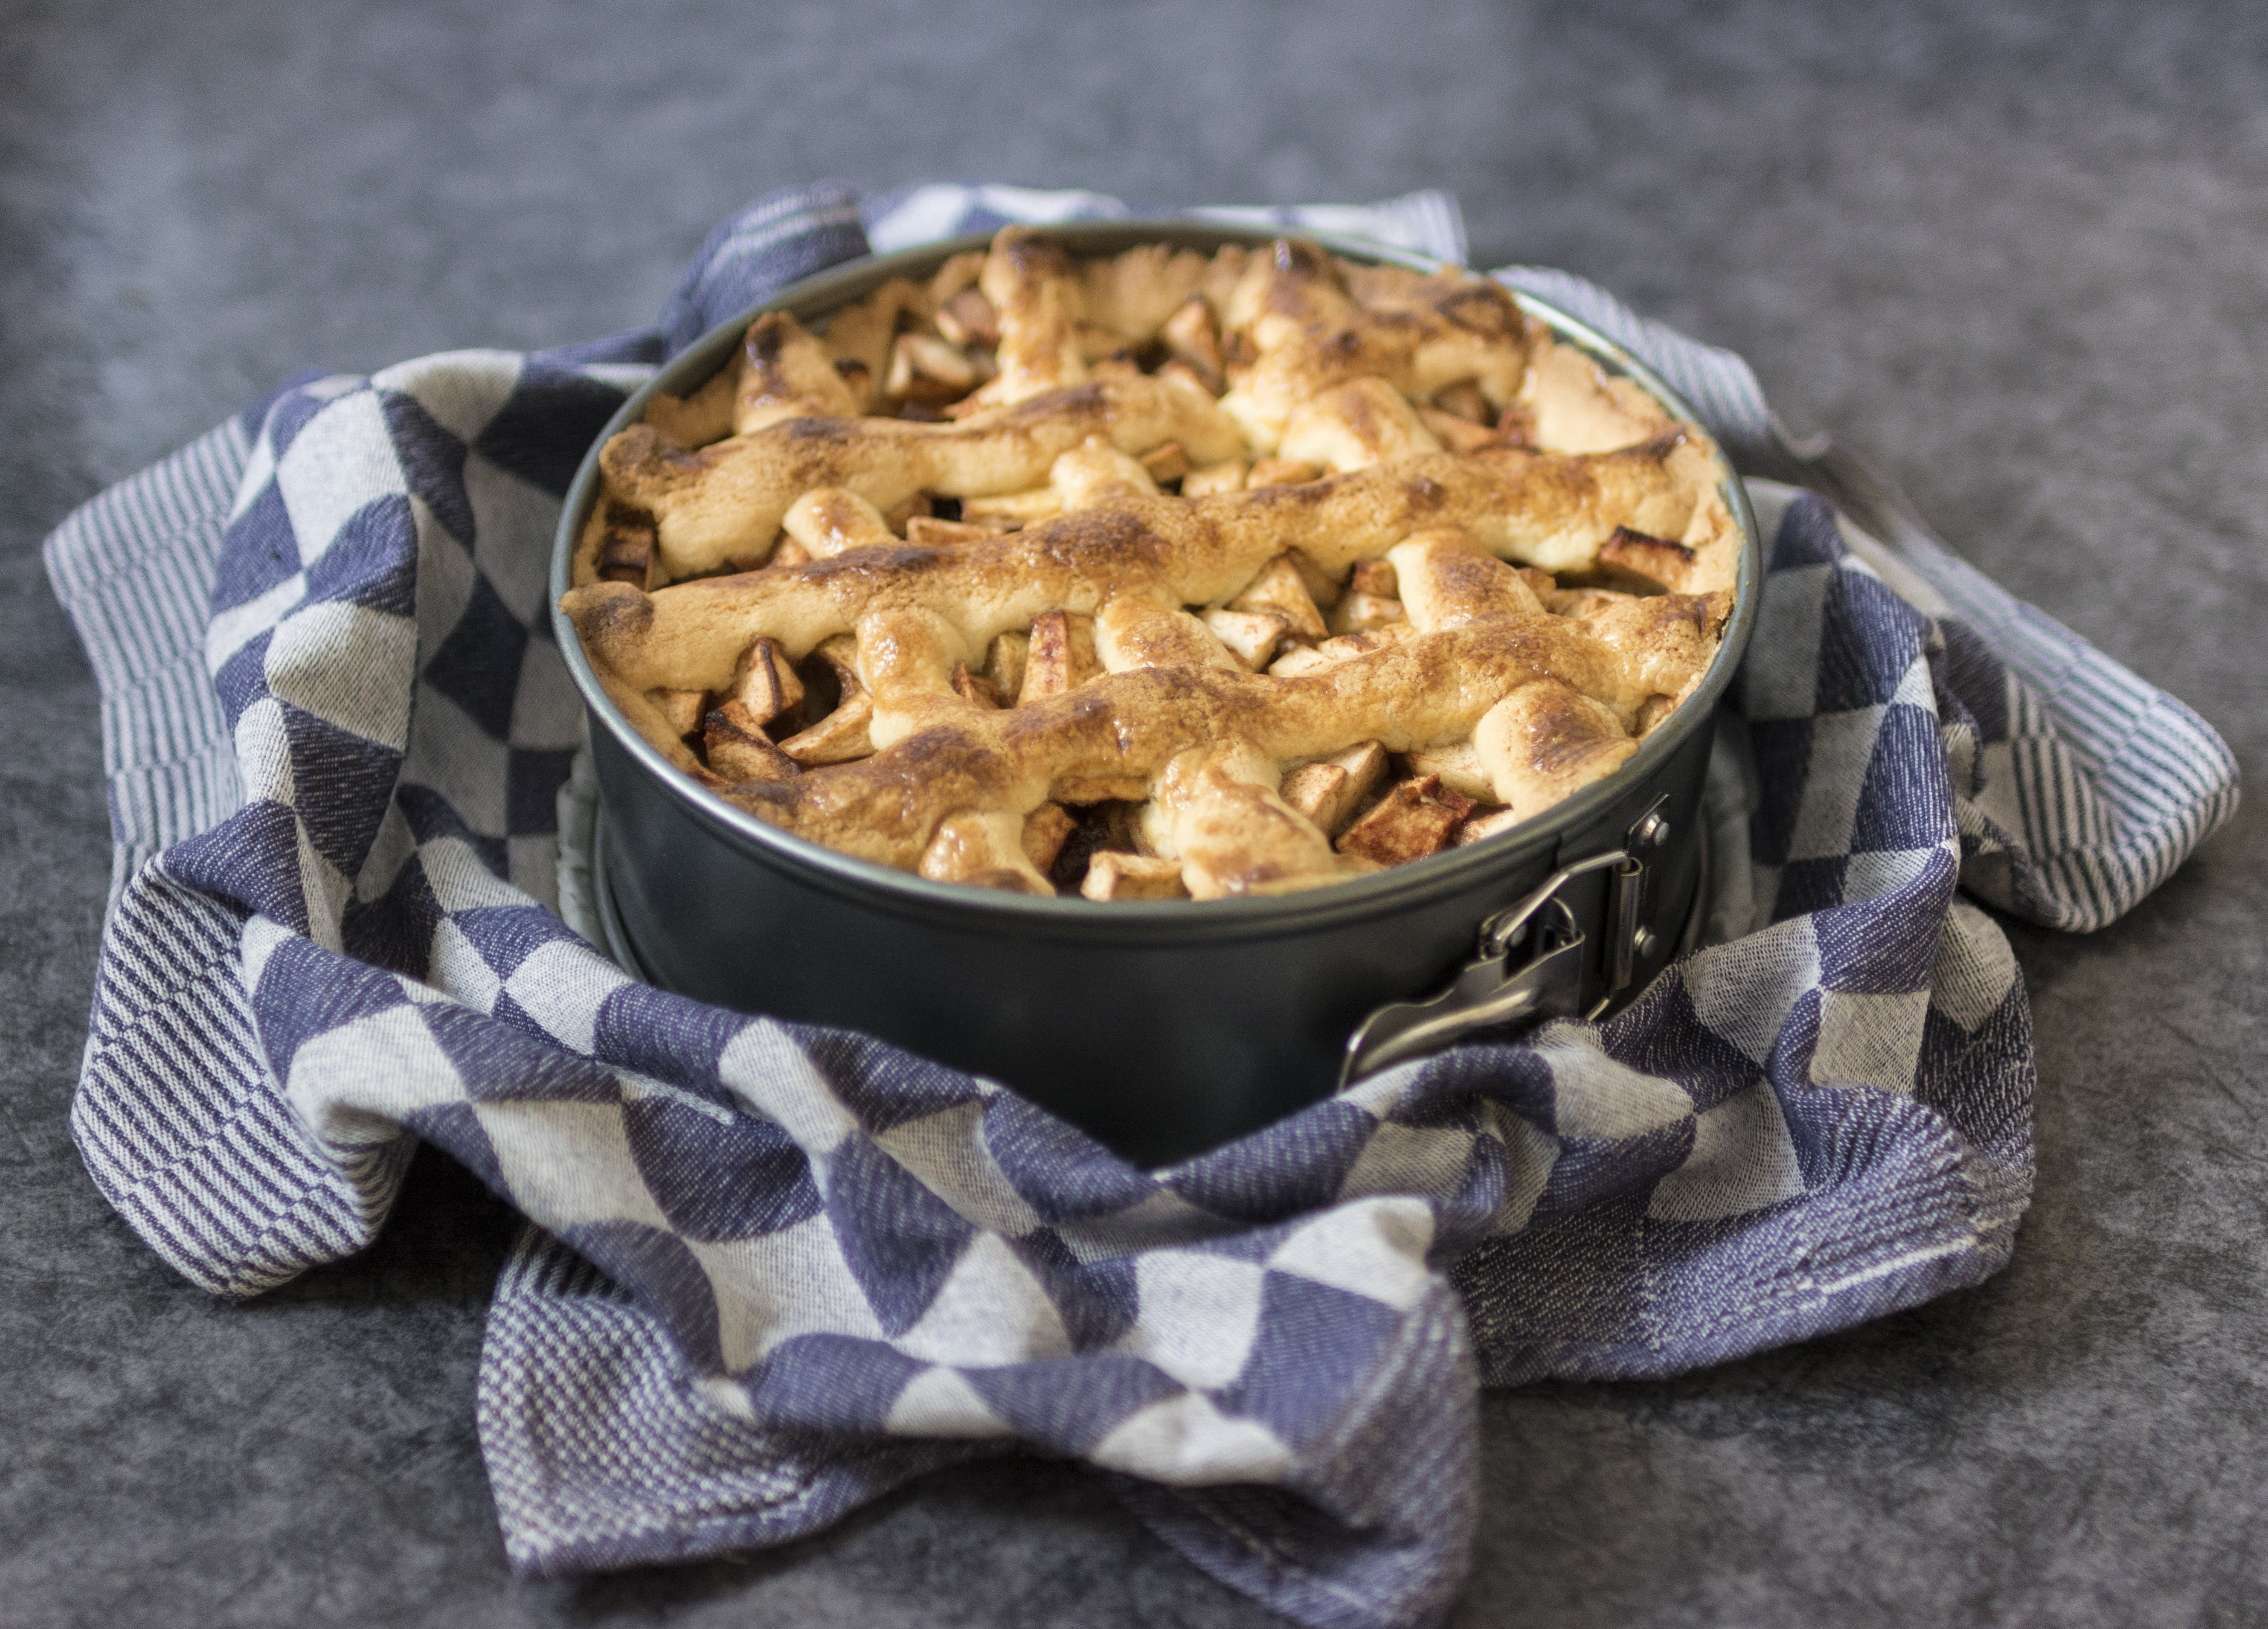 Baked Pie on Gray Metal Container